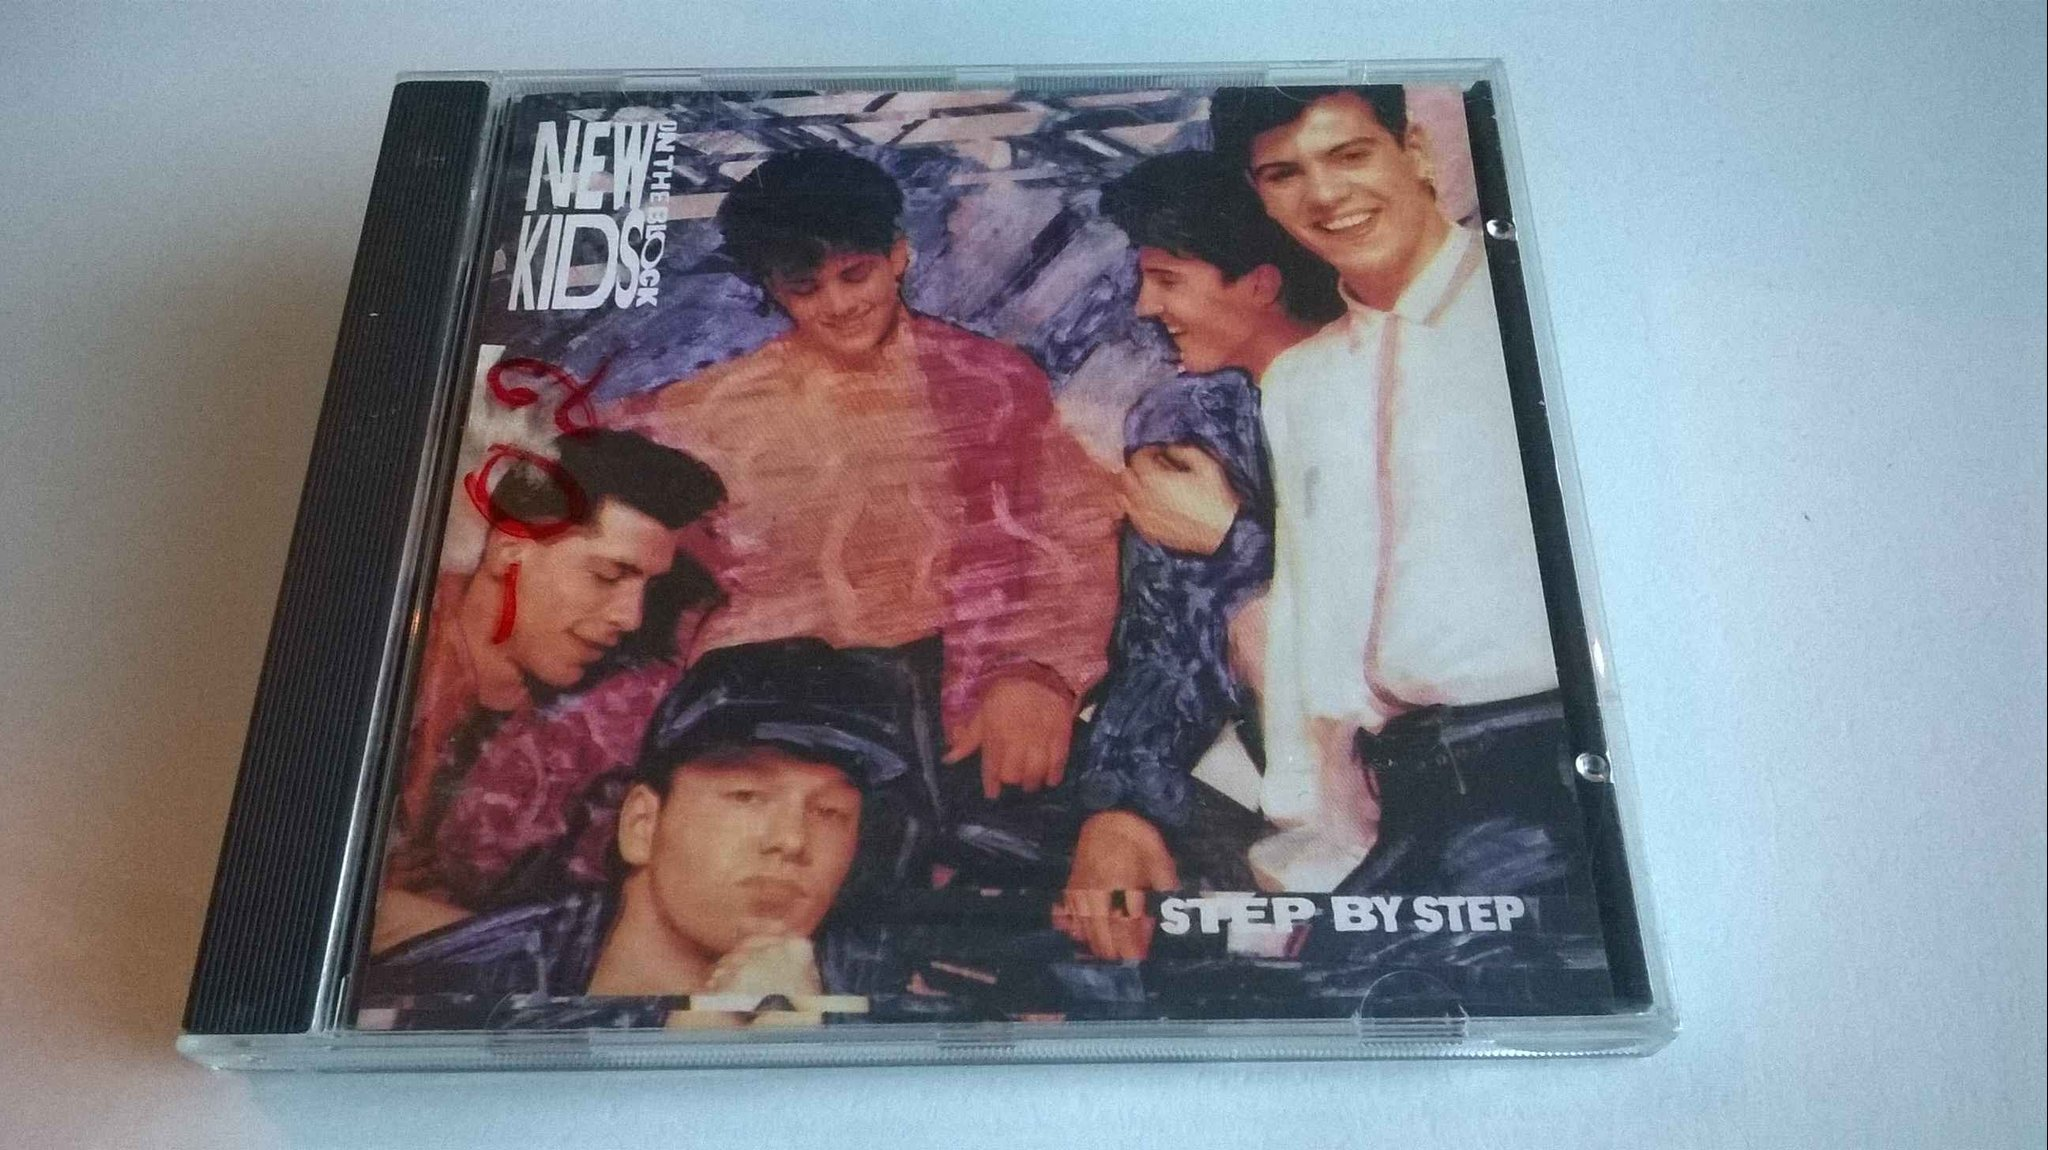 New Kids On The Block - Step By Step, CD